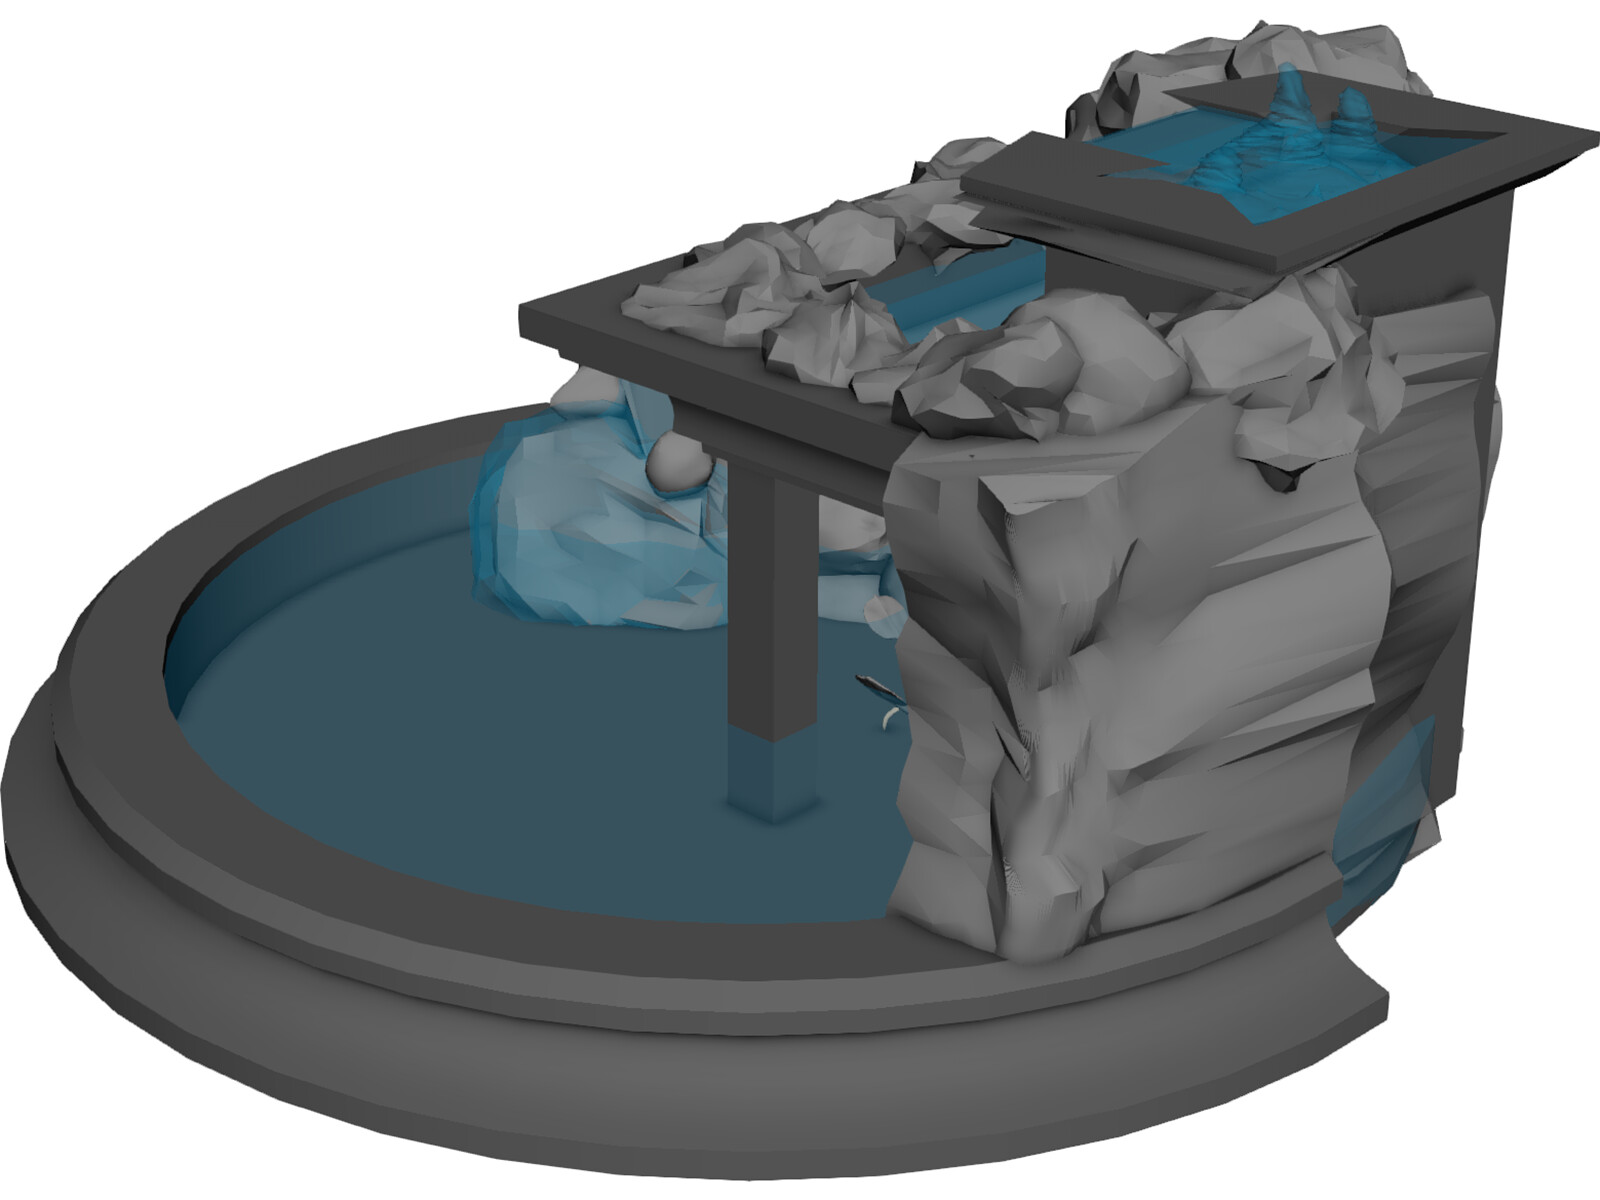 Fountain 3D Model - 3D CAD Browser